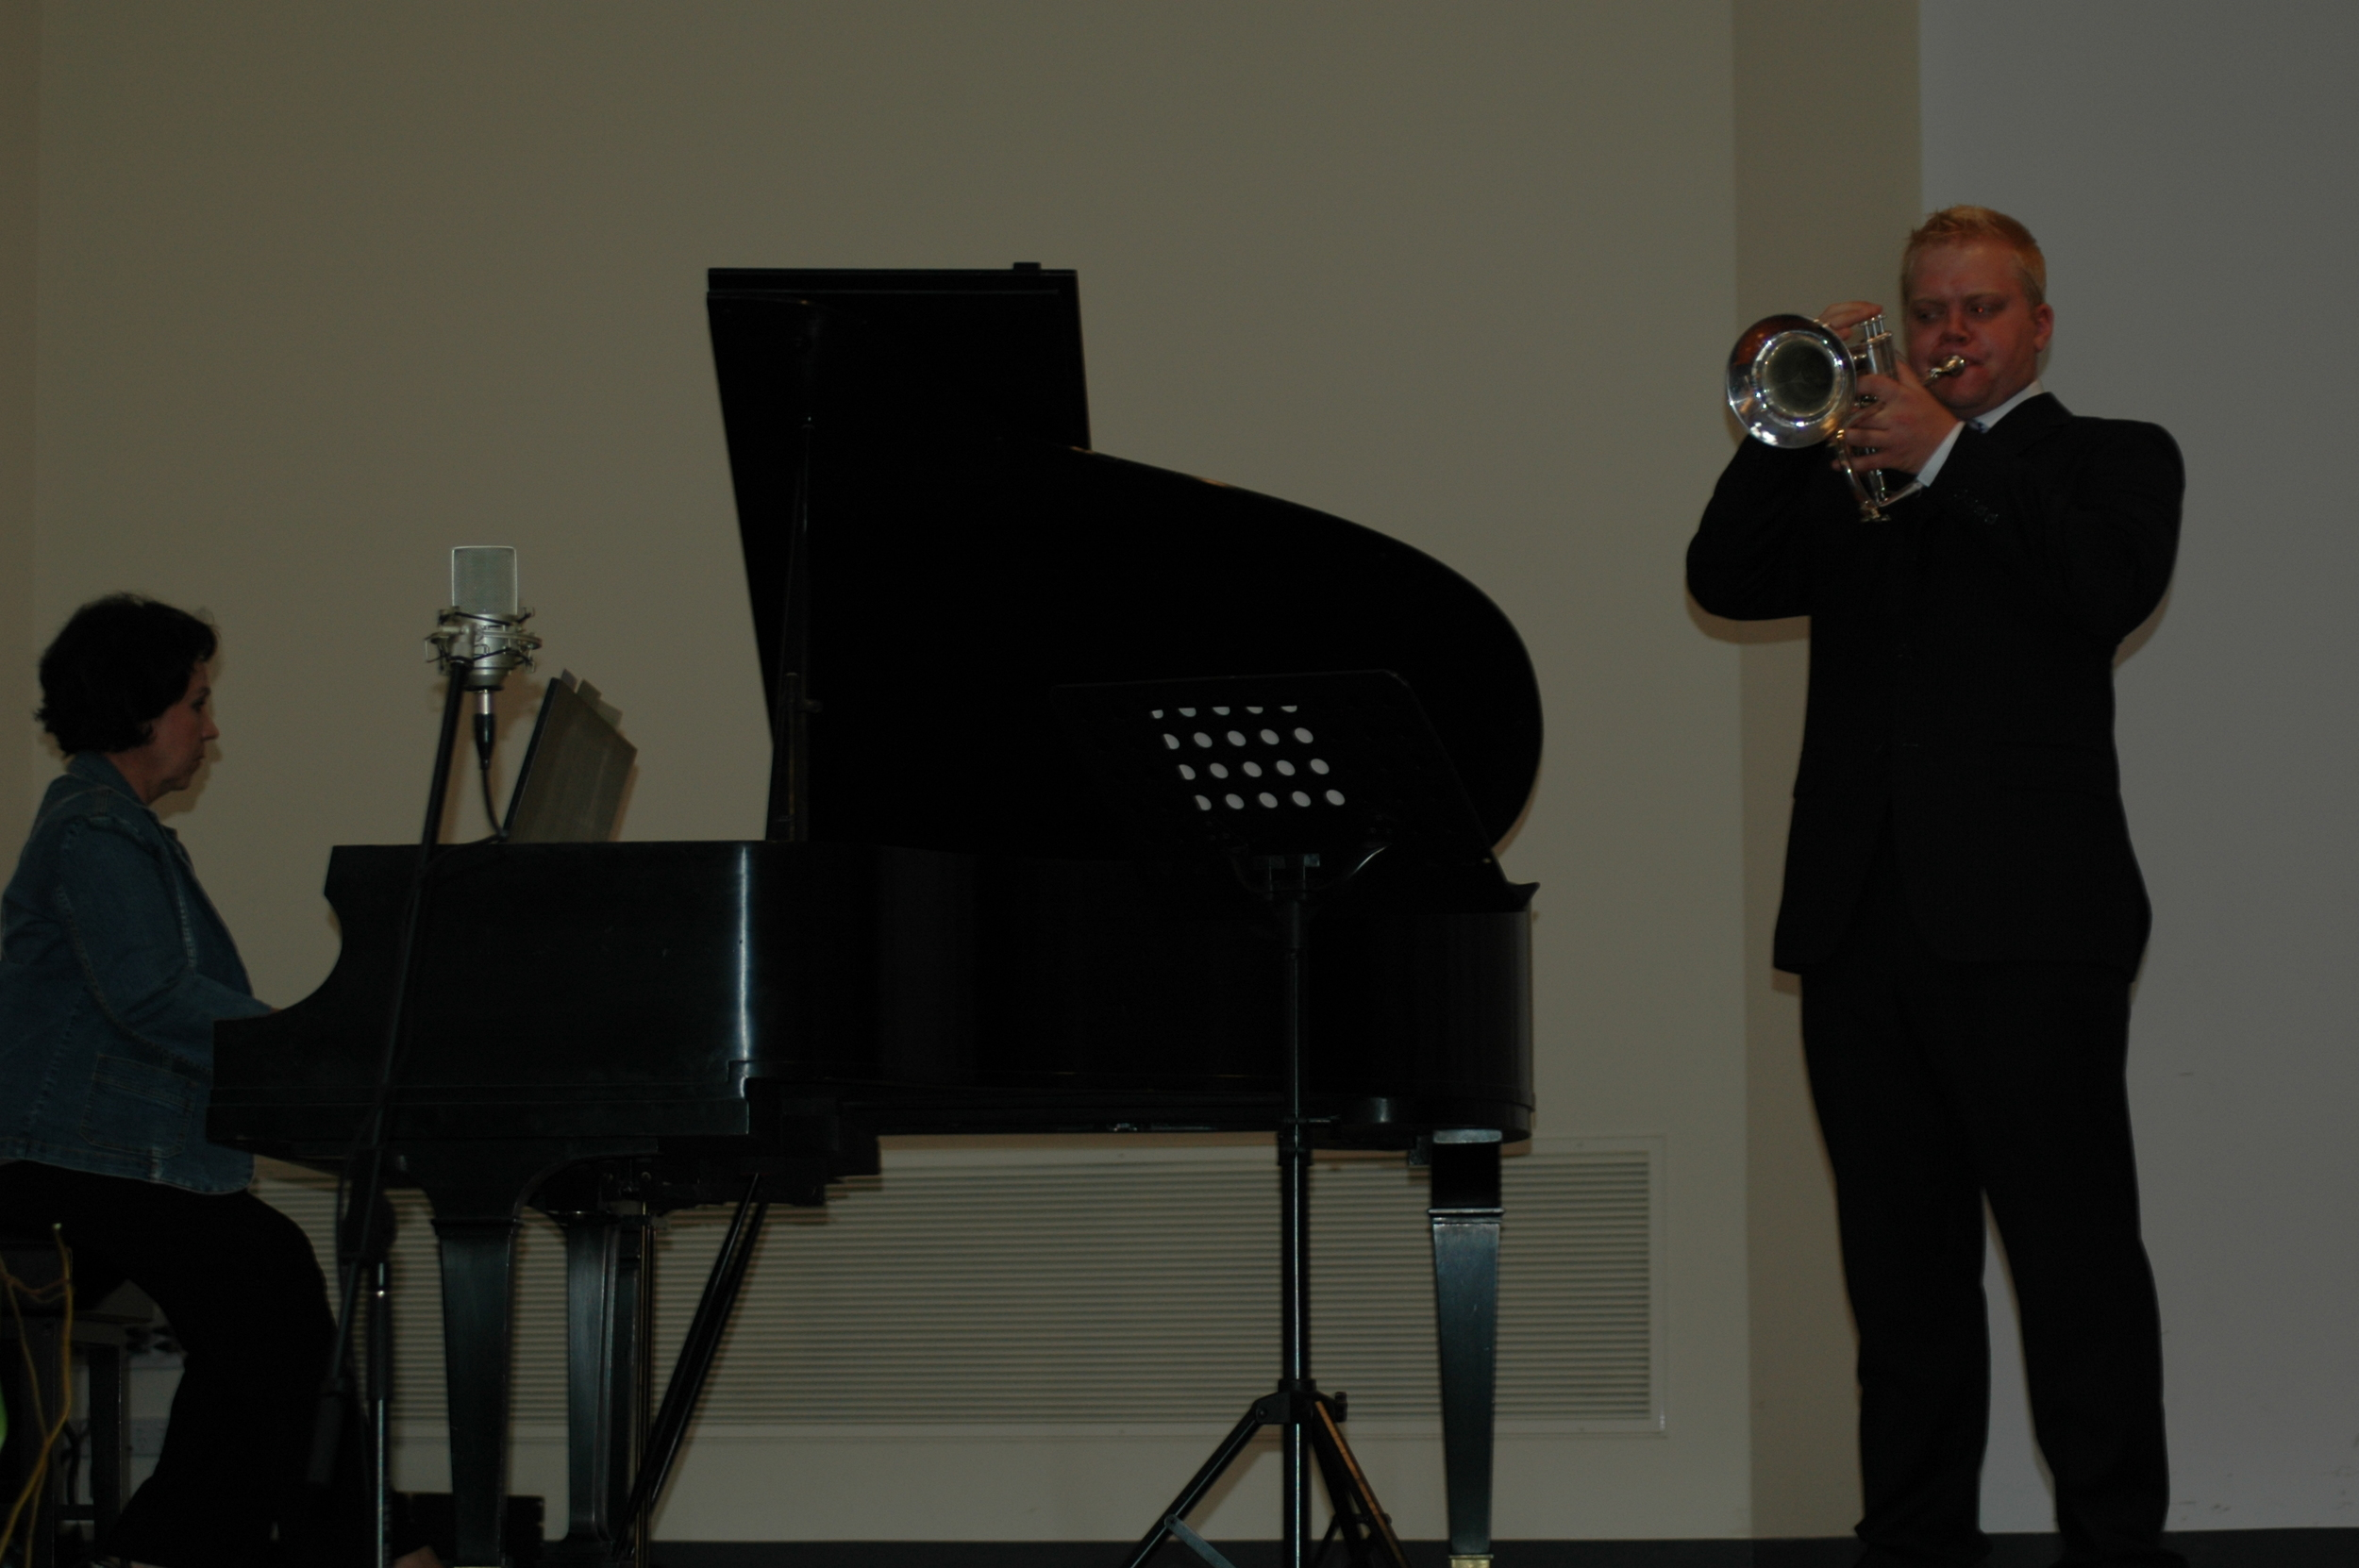 Trumpeter Phill O'Neill performing for a wedding in Adelaide Australia